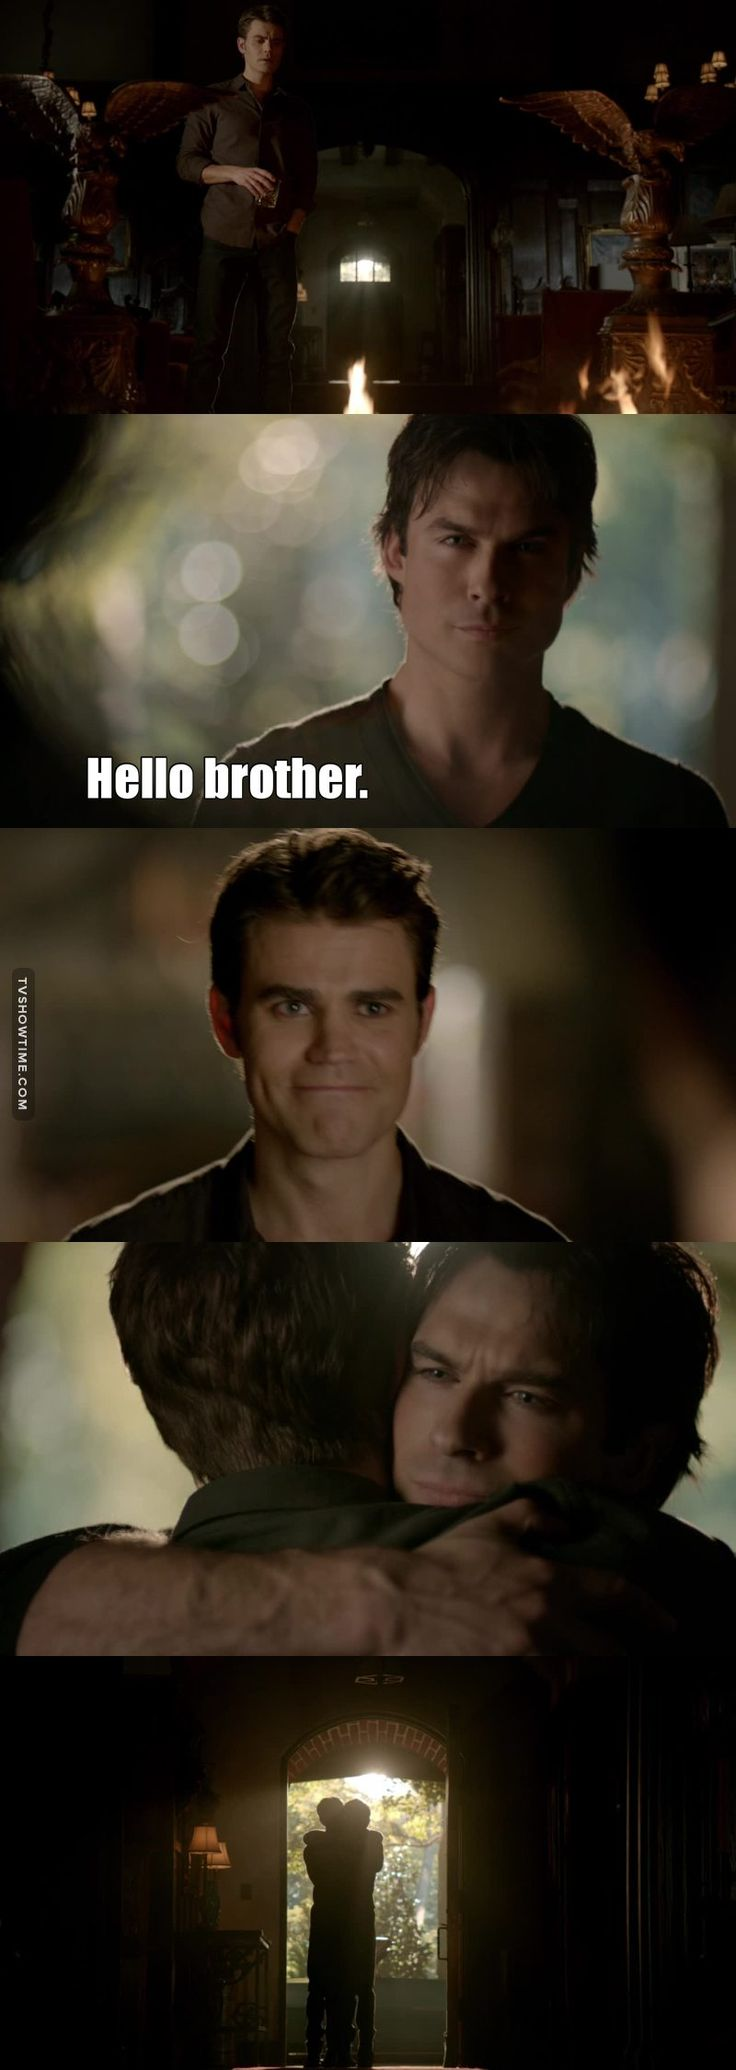 stefan and damon age difference in relationship